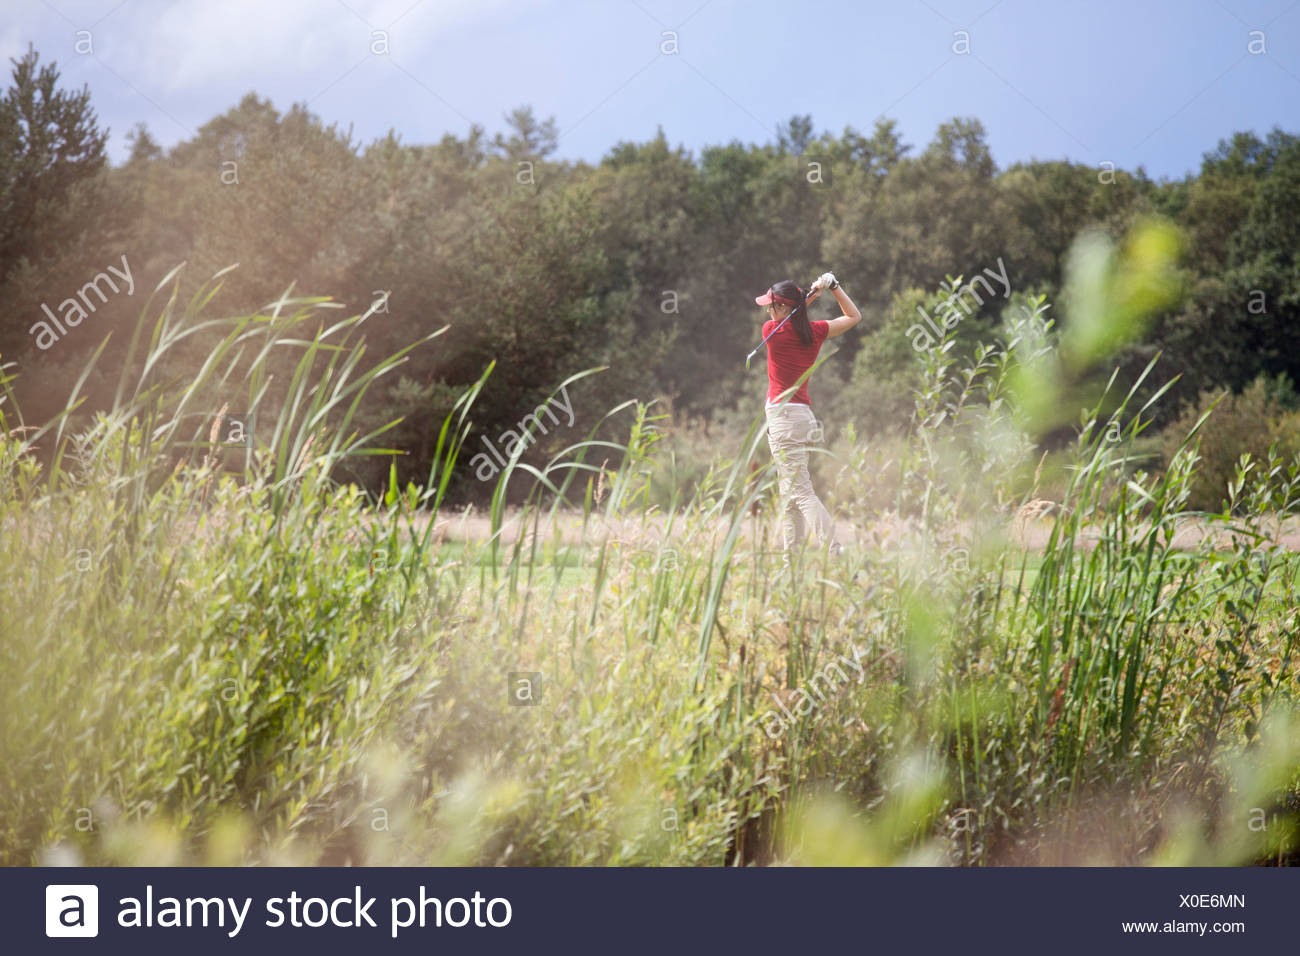 A female golfer teeing off - Stock Image